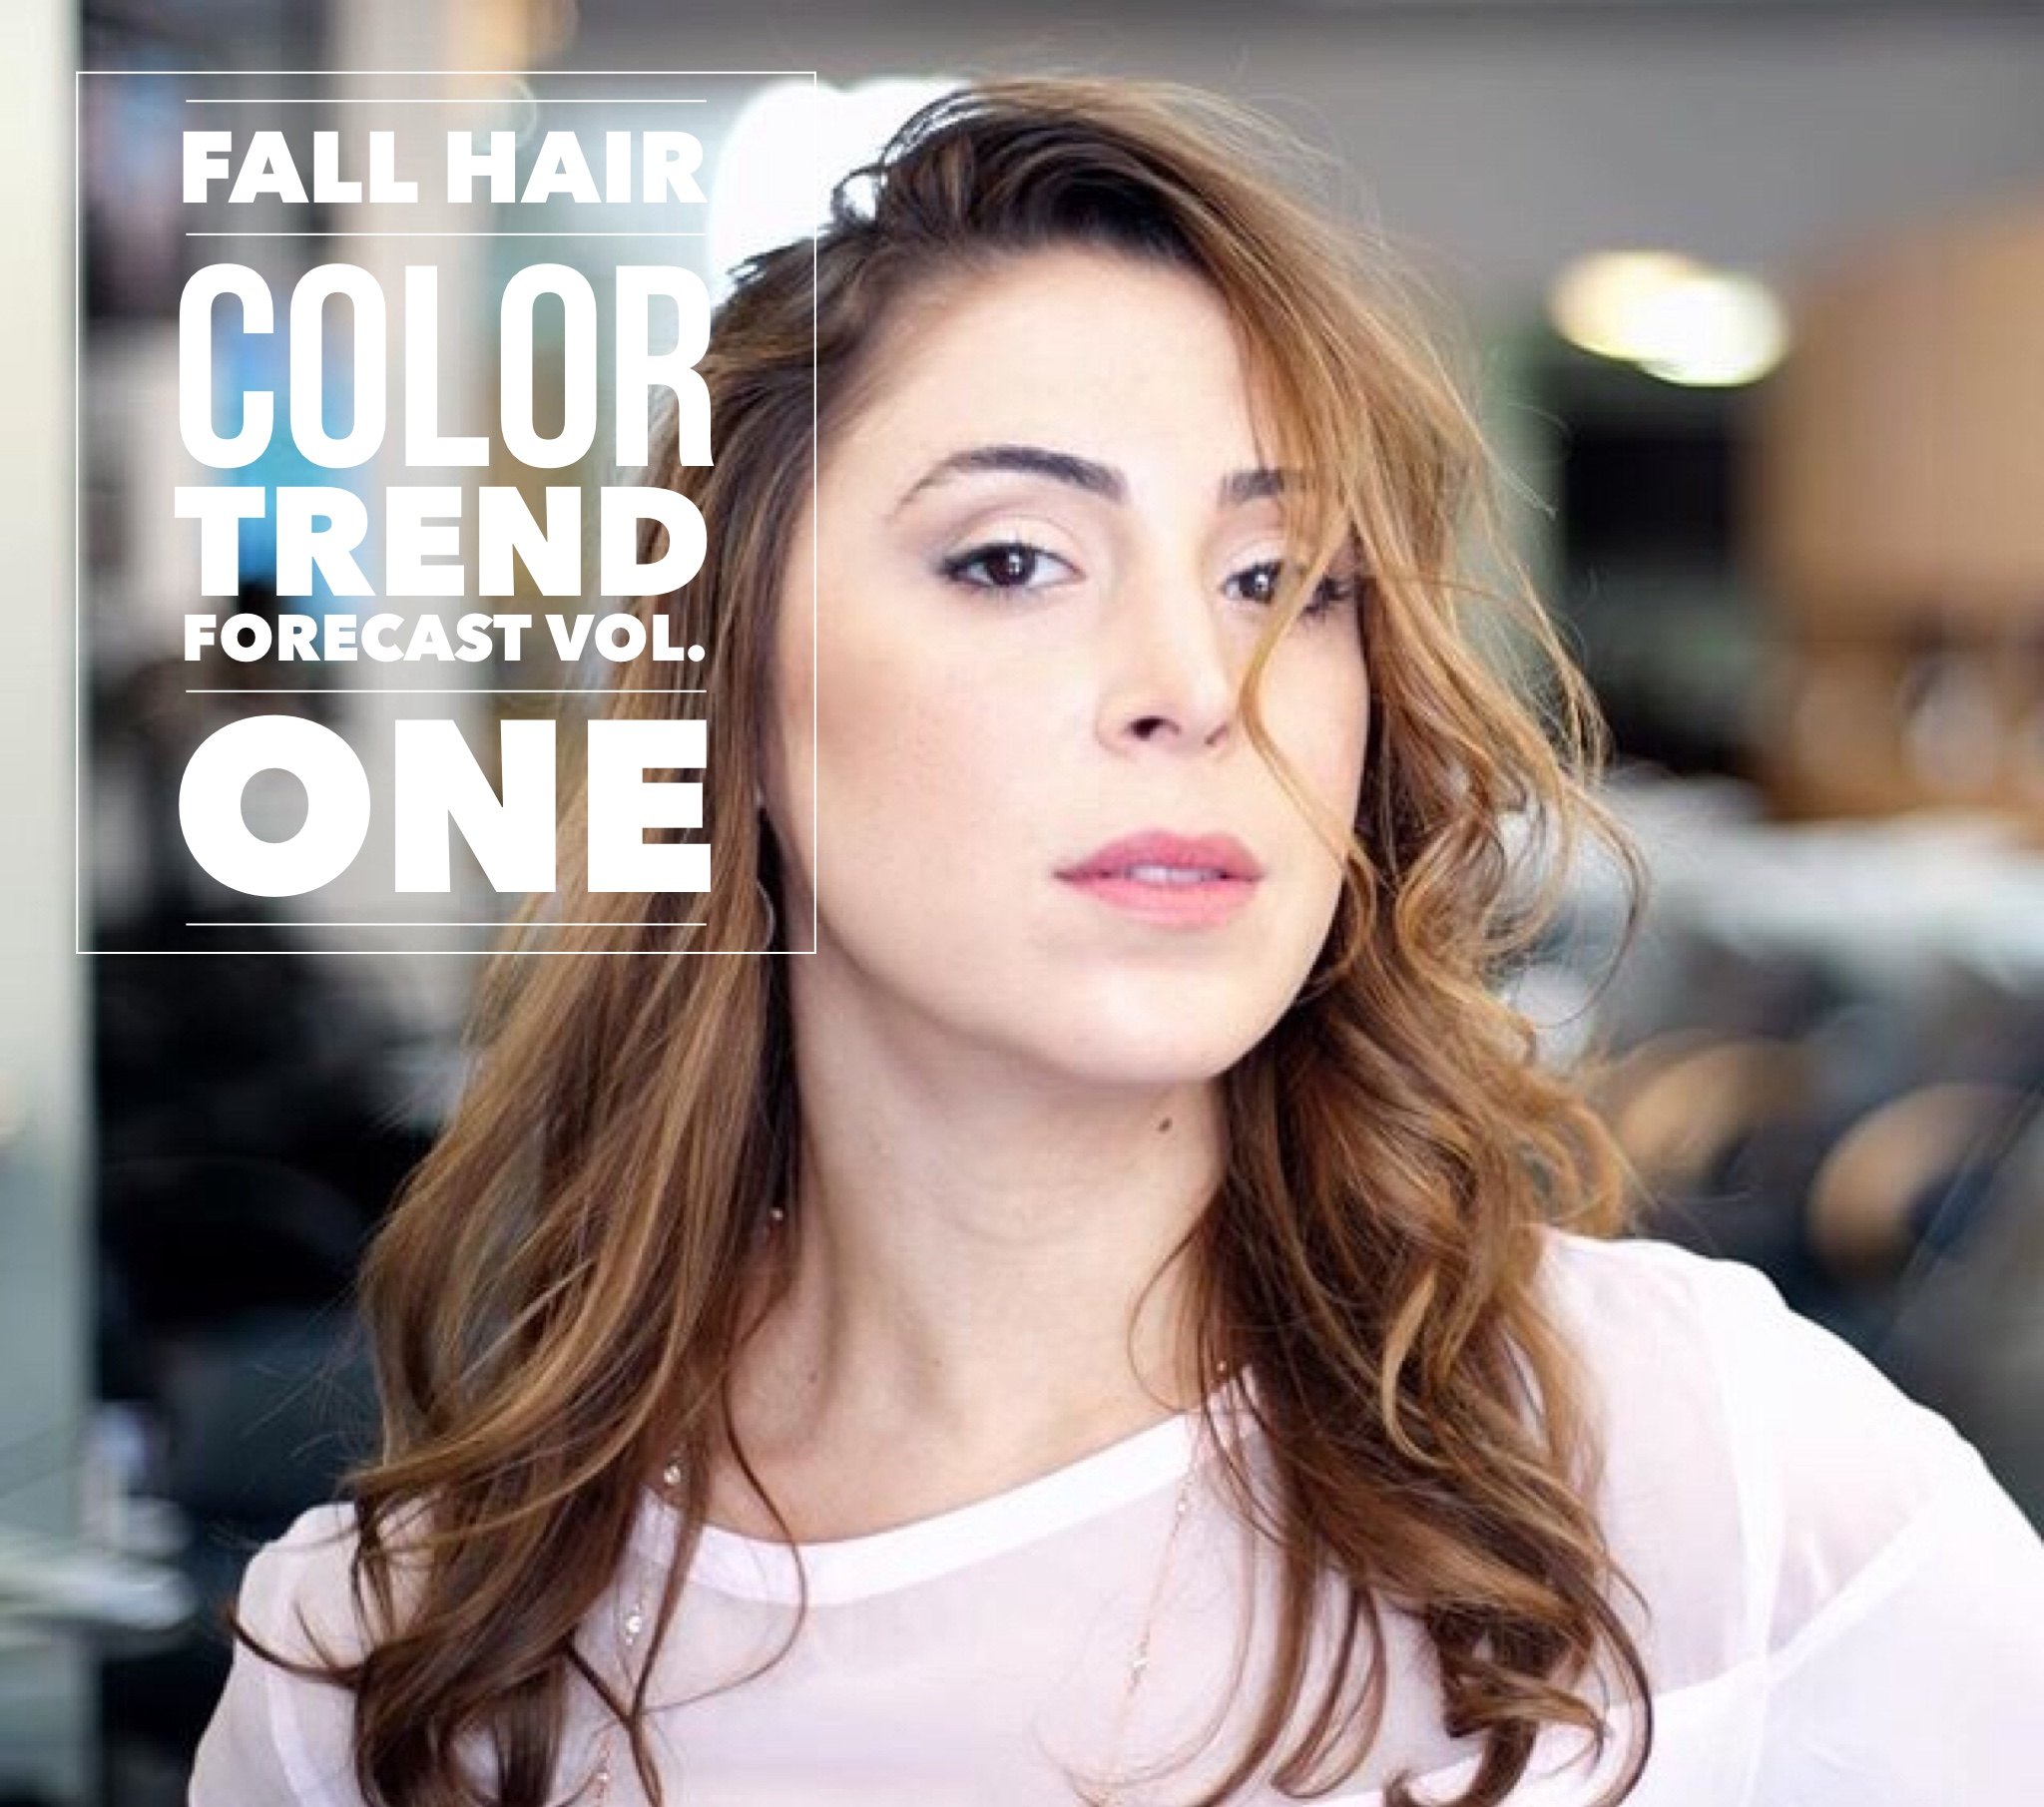 Master Colorist's Fall Hair Color Trend Forecast Vol. One